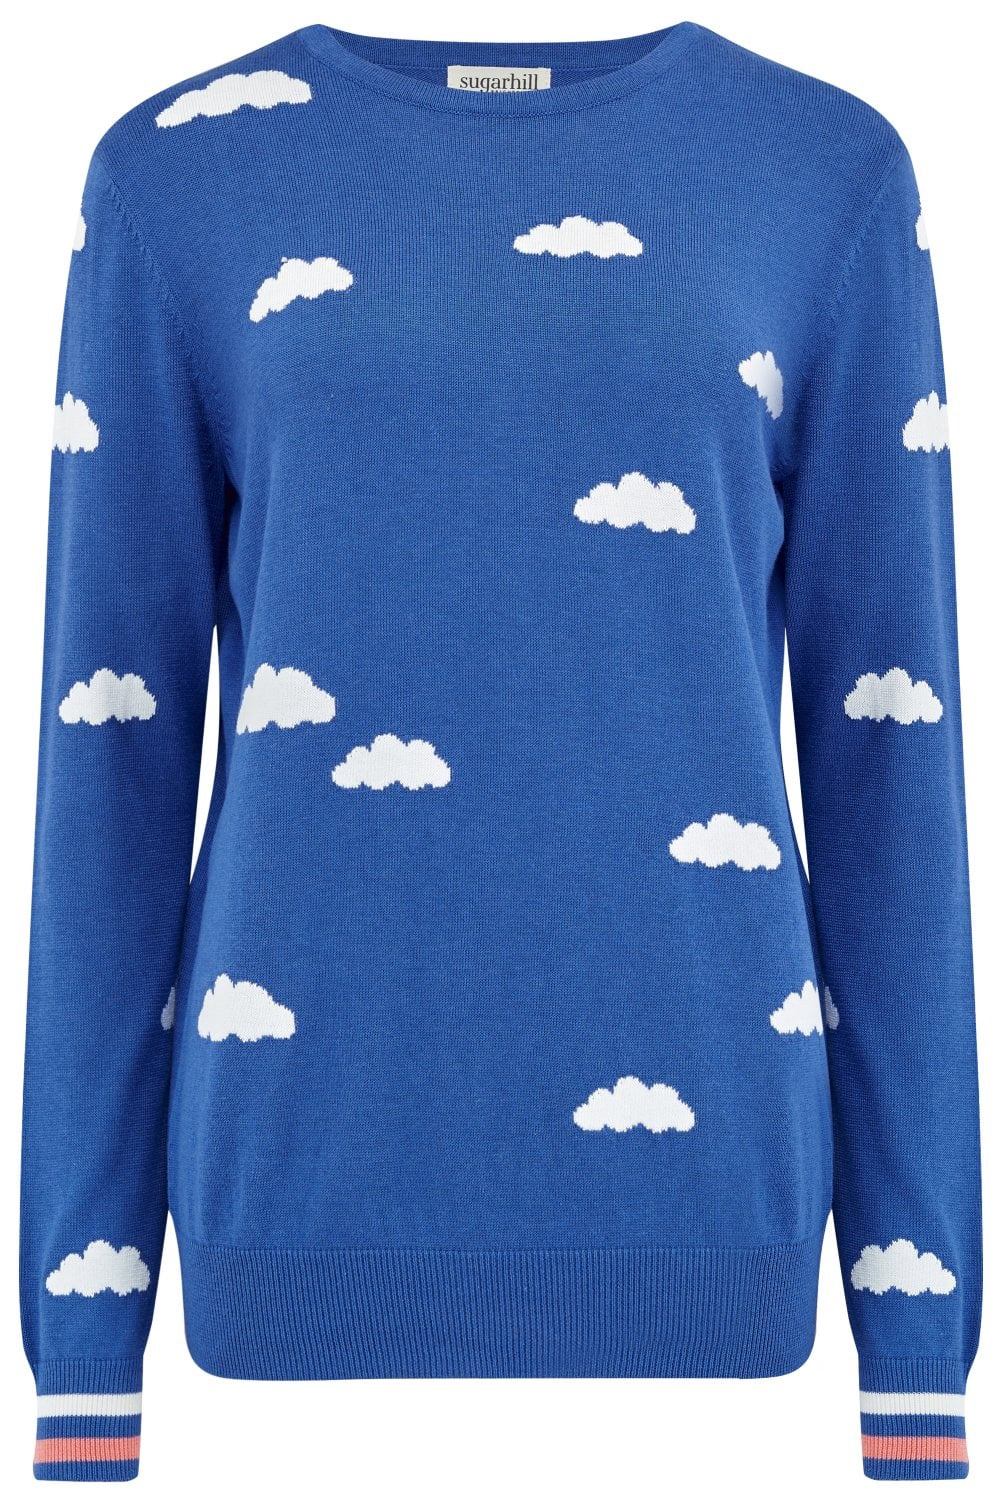 Rita Summer Skies Sweater